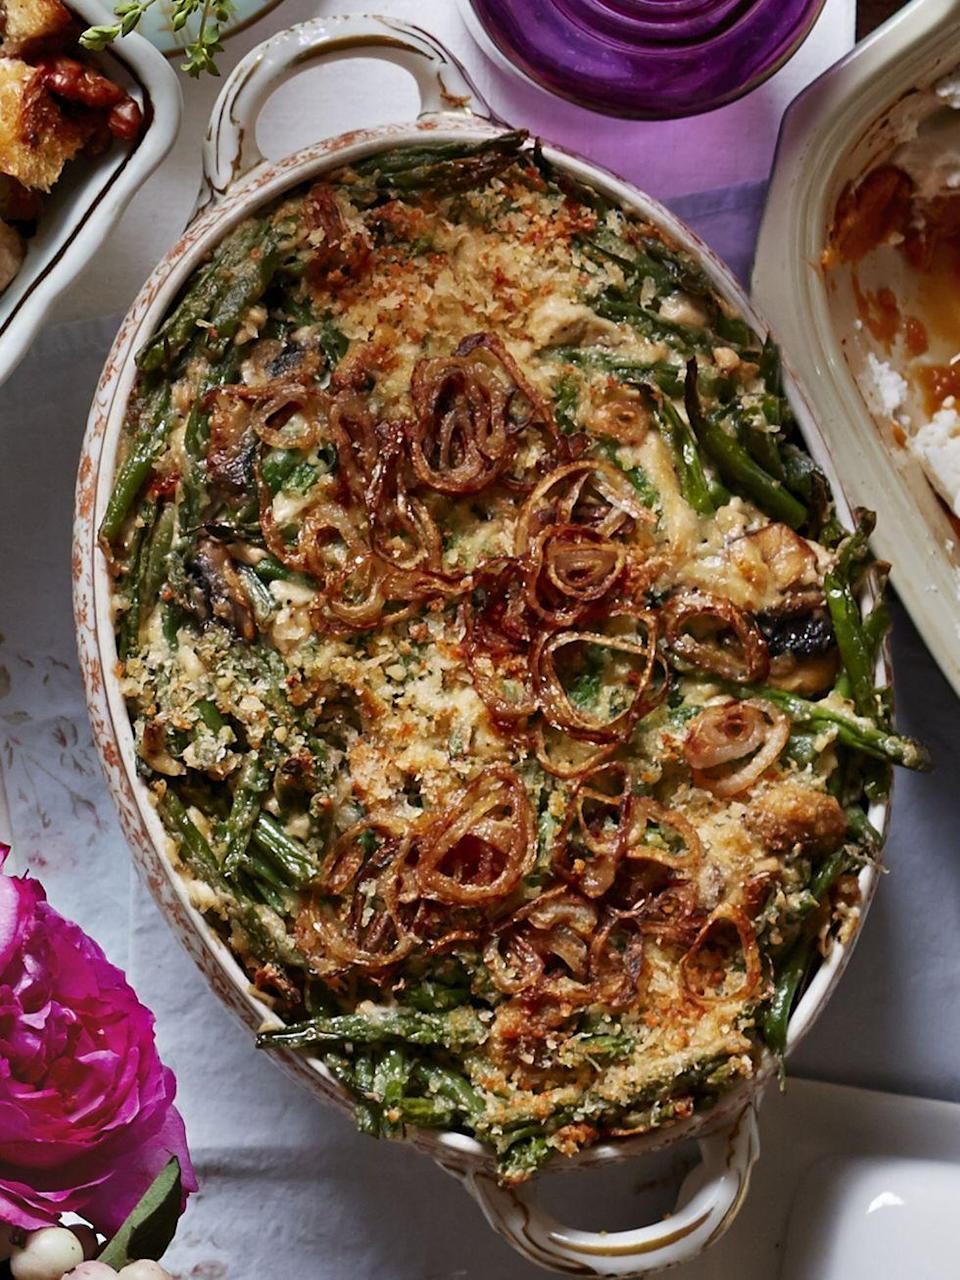 """<p>This saucy, crunchy, creamy casserole may be the side we look forward to most all. year long.</p><p><strong><a href=""""https://www.countryliving.com/food-drinks/recipes/a5868/green-bean-casserole-fried-shallots-recipe-clx1114/"""" rel=""""nofollow noopener"""" target=""""_blank"""" data-ylk=""""slk:Get the recipe"""" class=""""link rapid-noclick-resp"""">Get the recipe</a>.</strong></p>"""